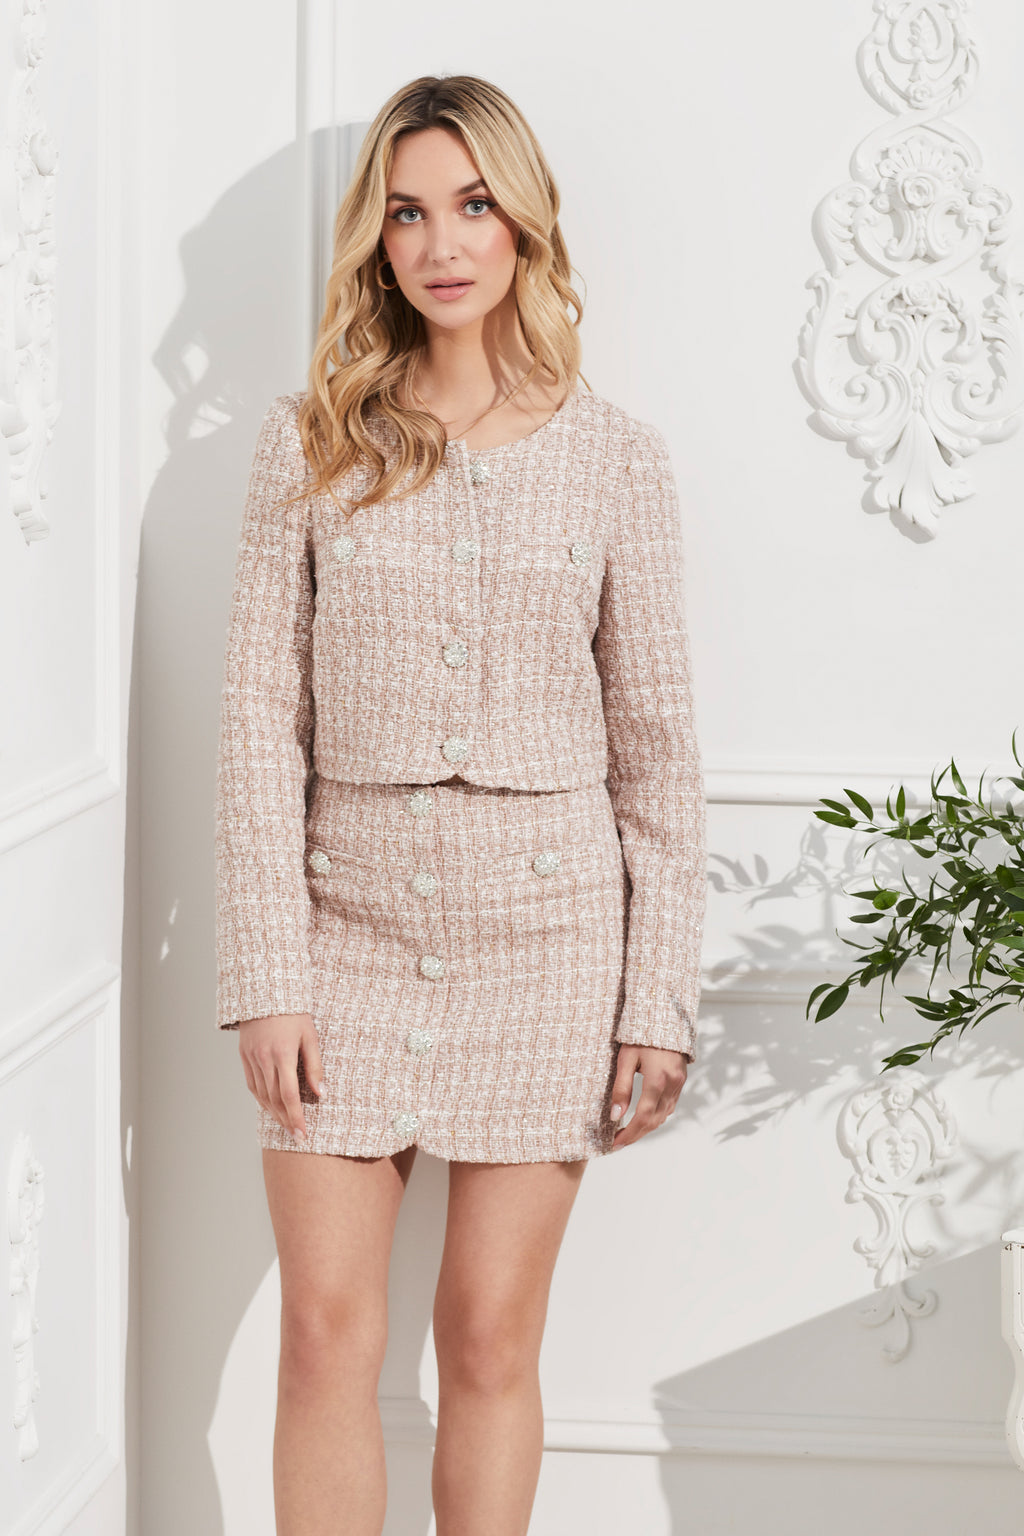 Jewel Button Up Tweed Jacket - honey